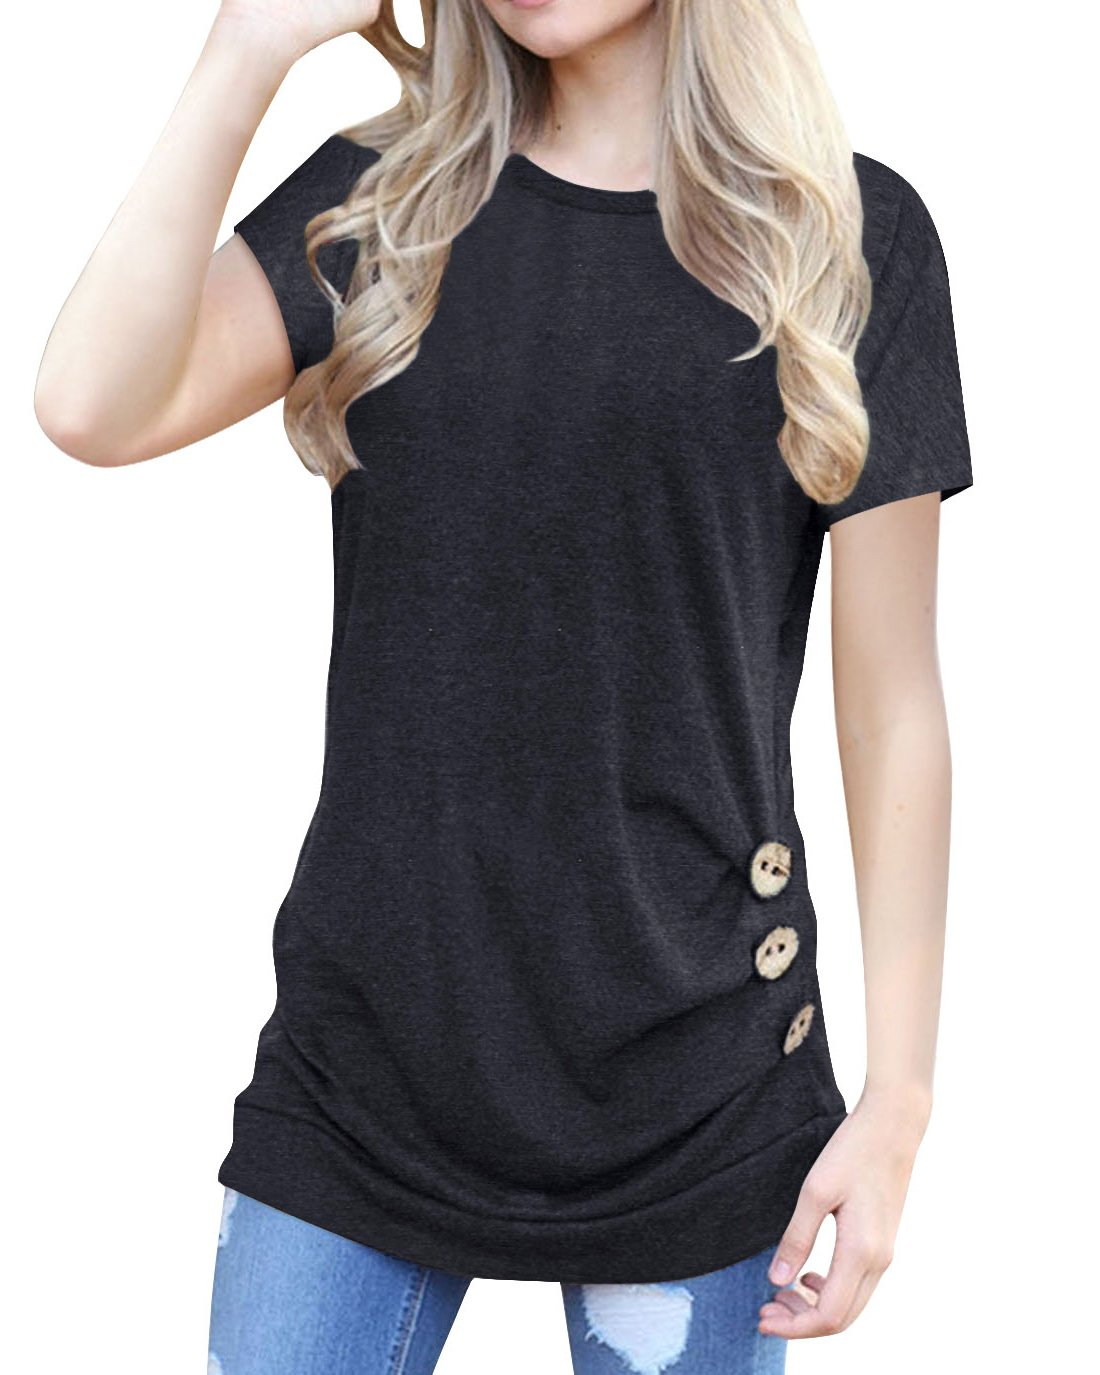 Women's Casual Short Sleeve Tunic Top Sweatshirt Blouse Button Decor T-Shirt Black L